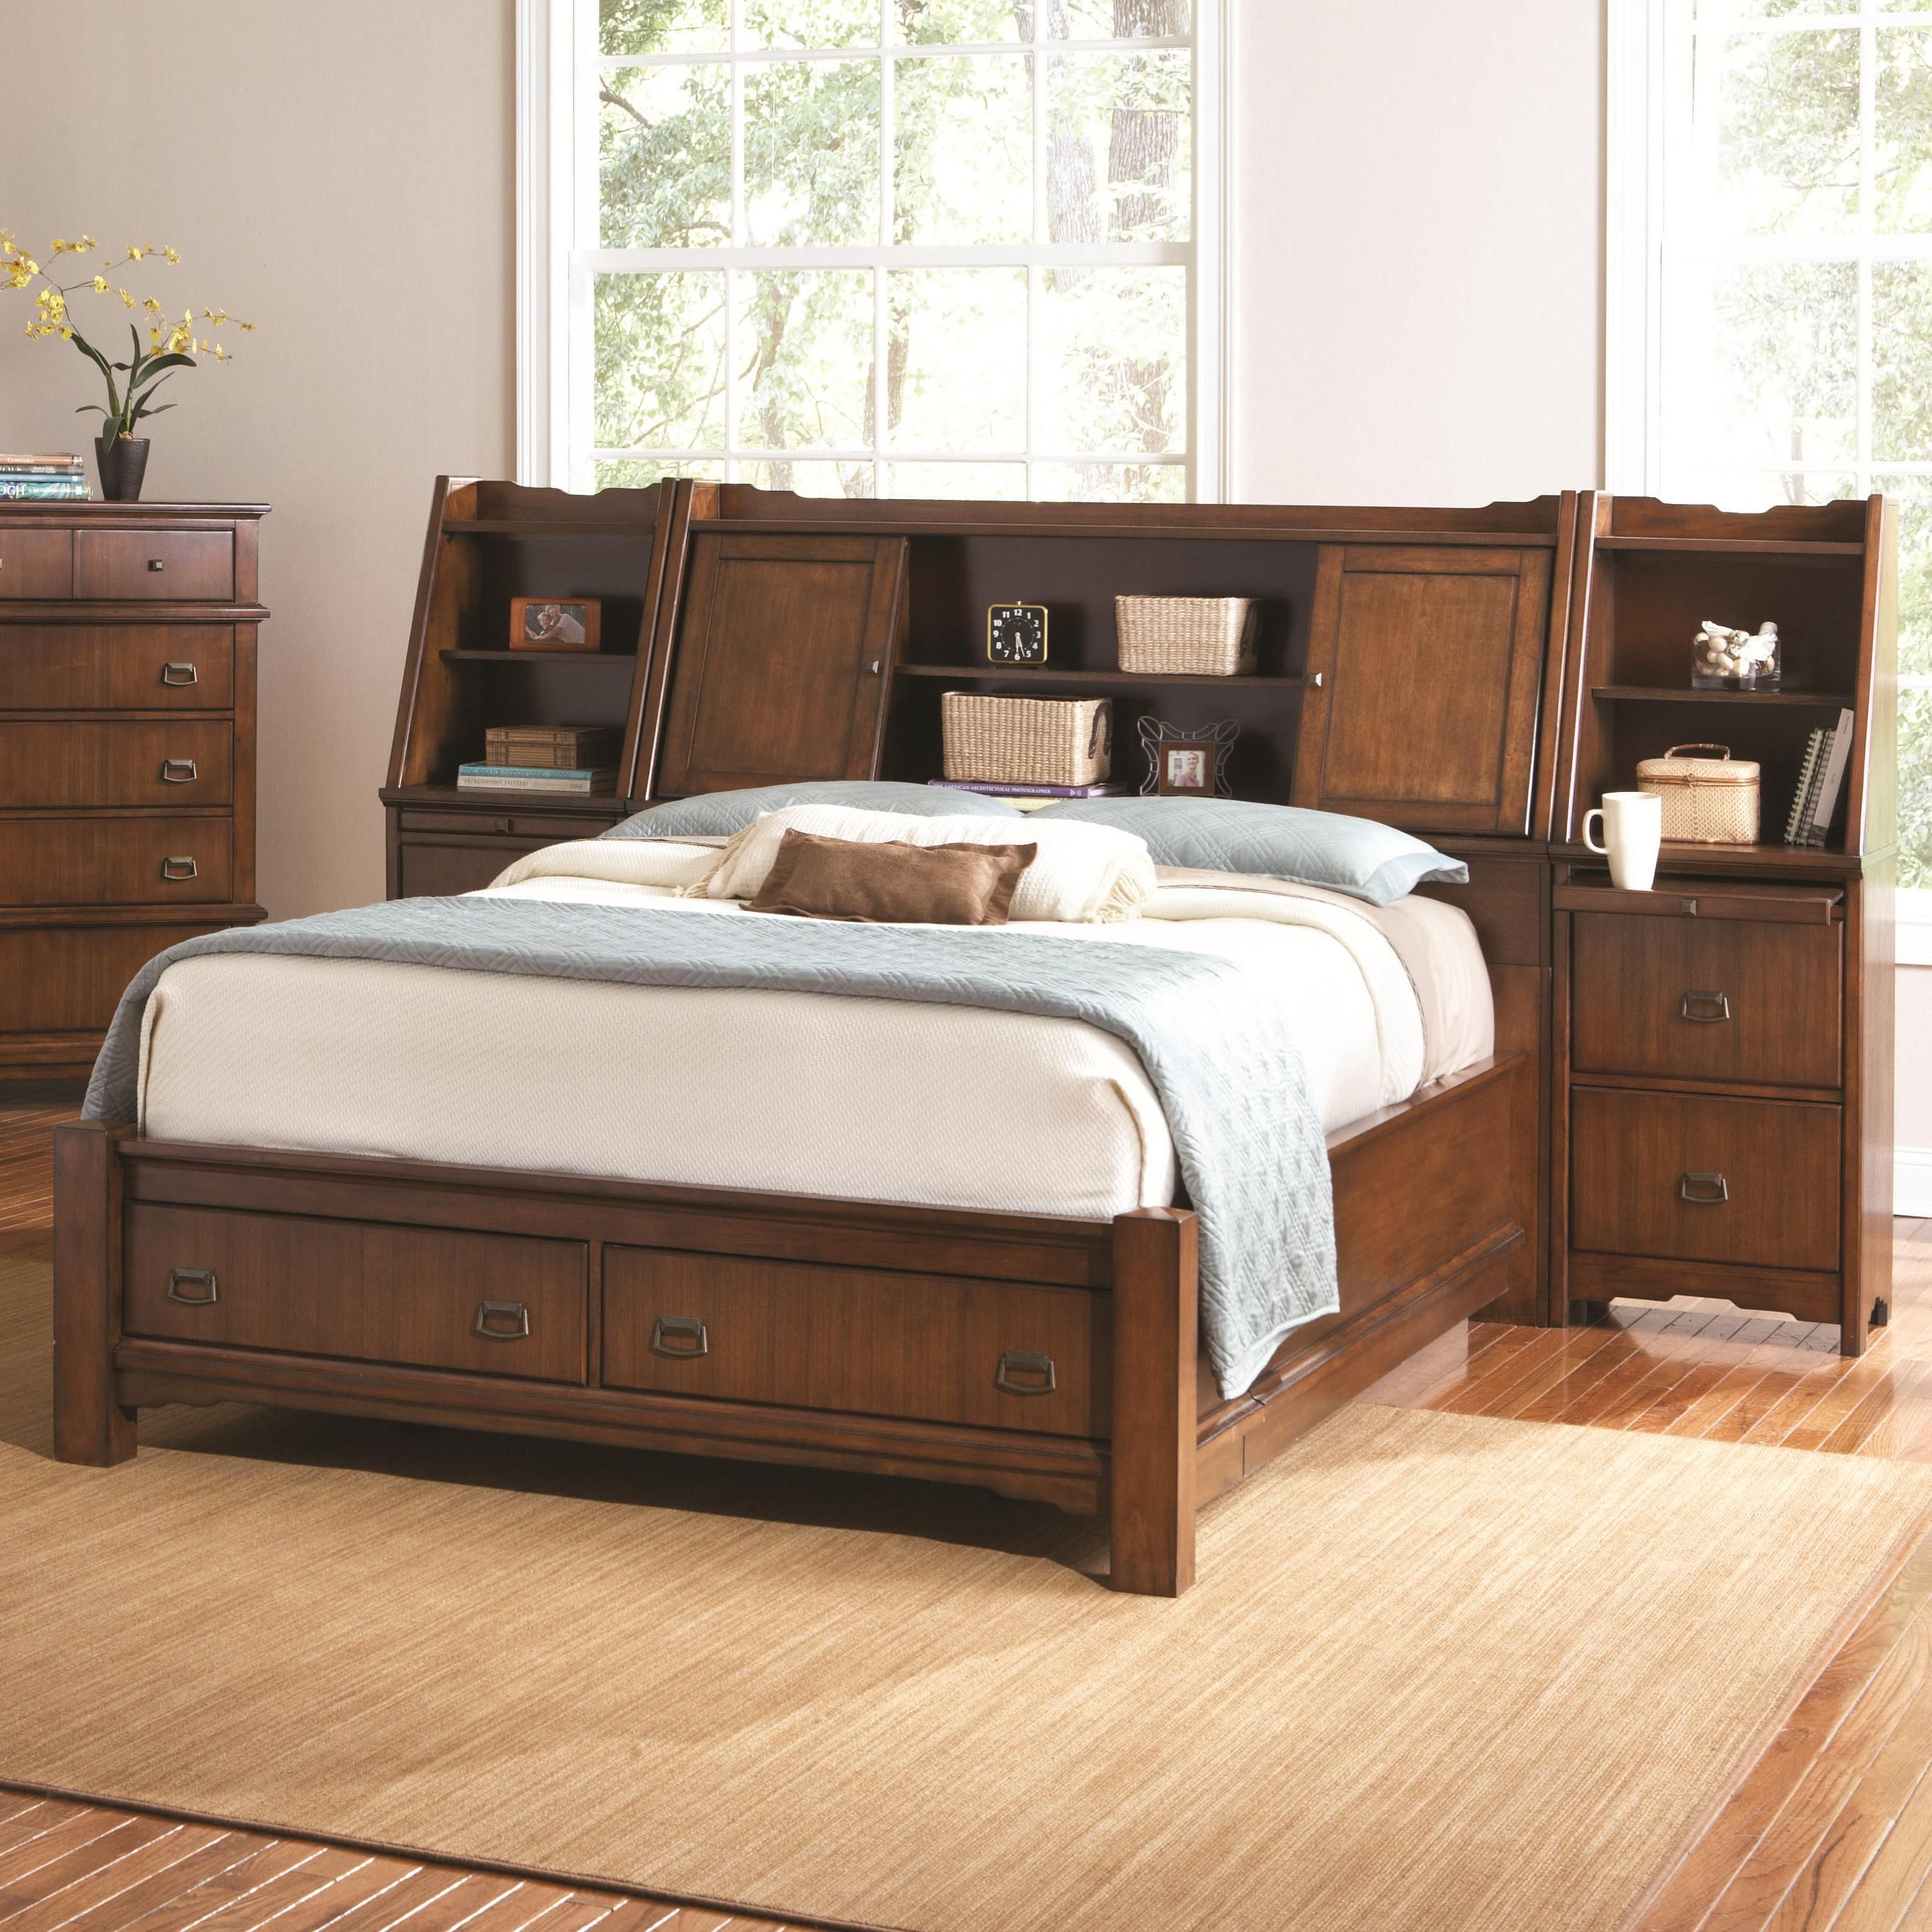 furniture pin solid area set headboard amish mission oak wood illinois bedroom juan san chicago style shaker